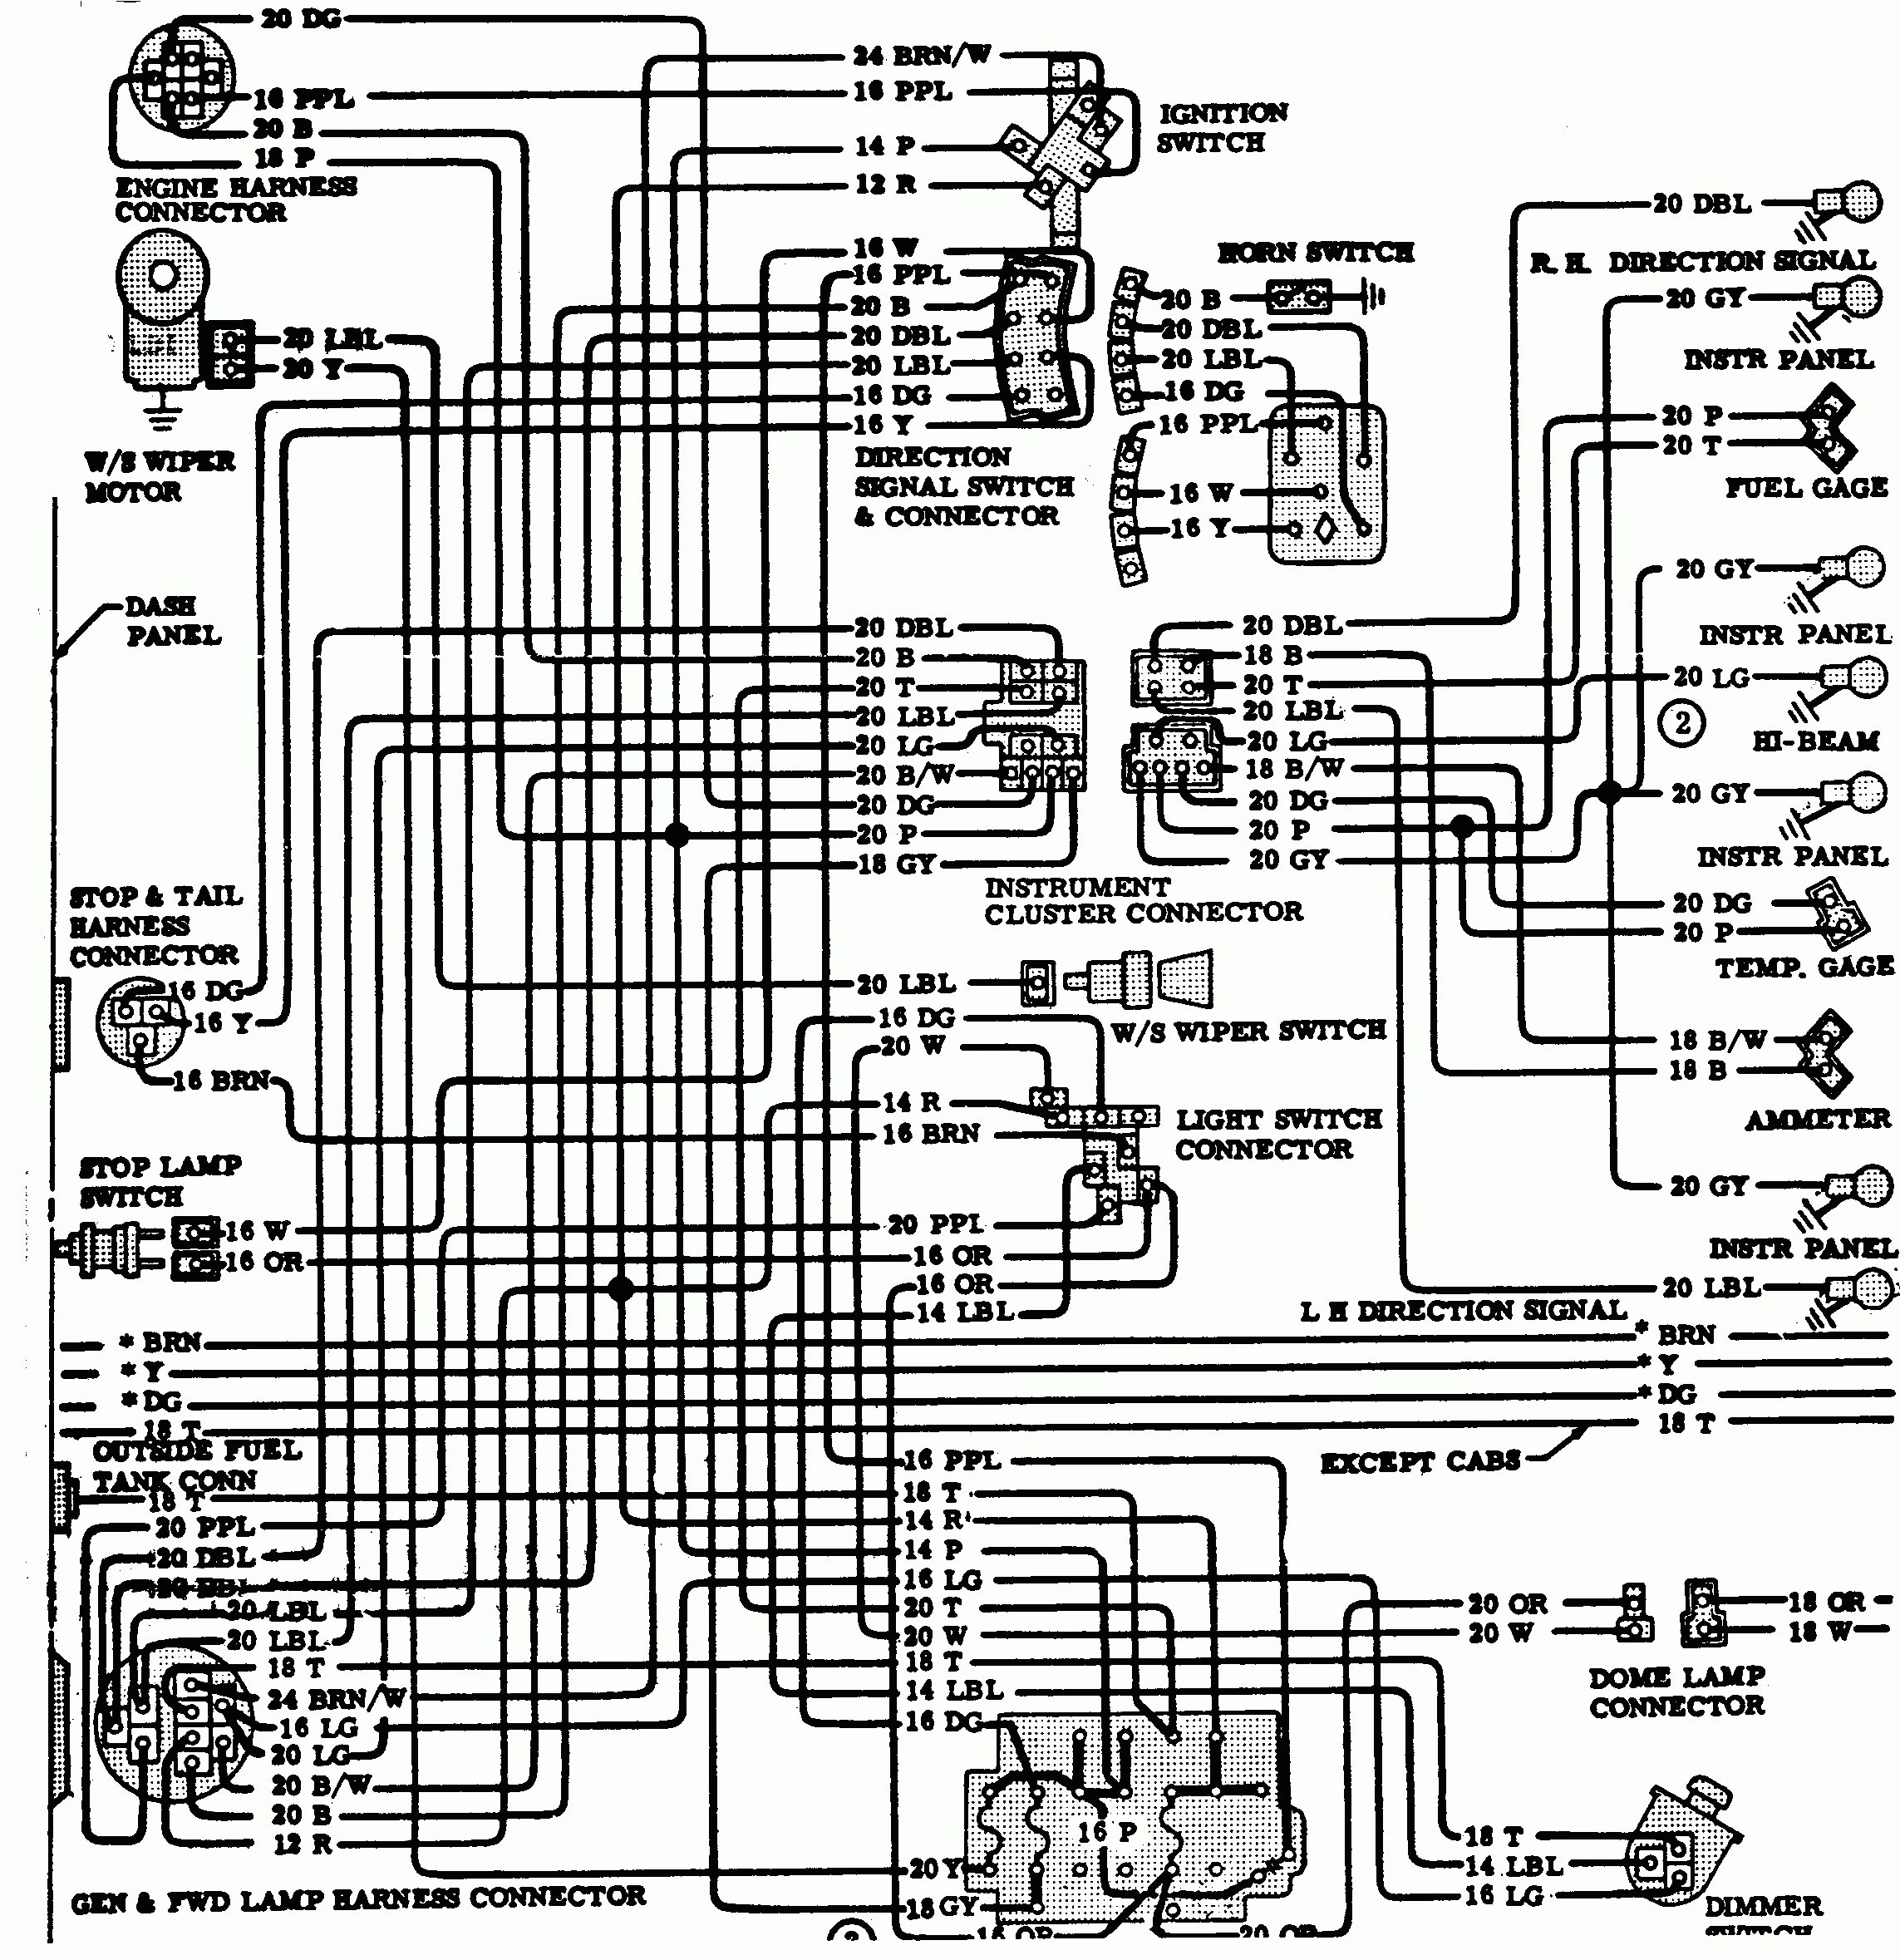 1981 Corvette Fuse Box Diagram Electrical Schematics Wiring Bulkhead Furthermore 1979 Toyota Pickup Chevy Lzk Gallery Wire Data Schema U2022 Relay